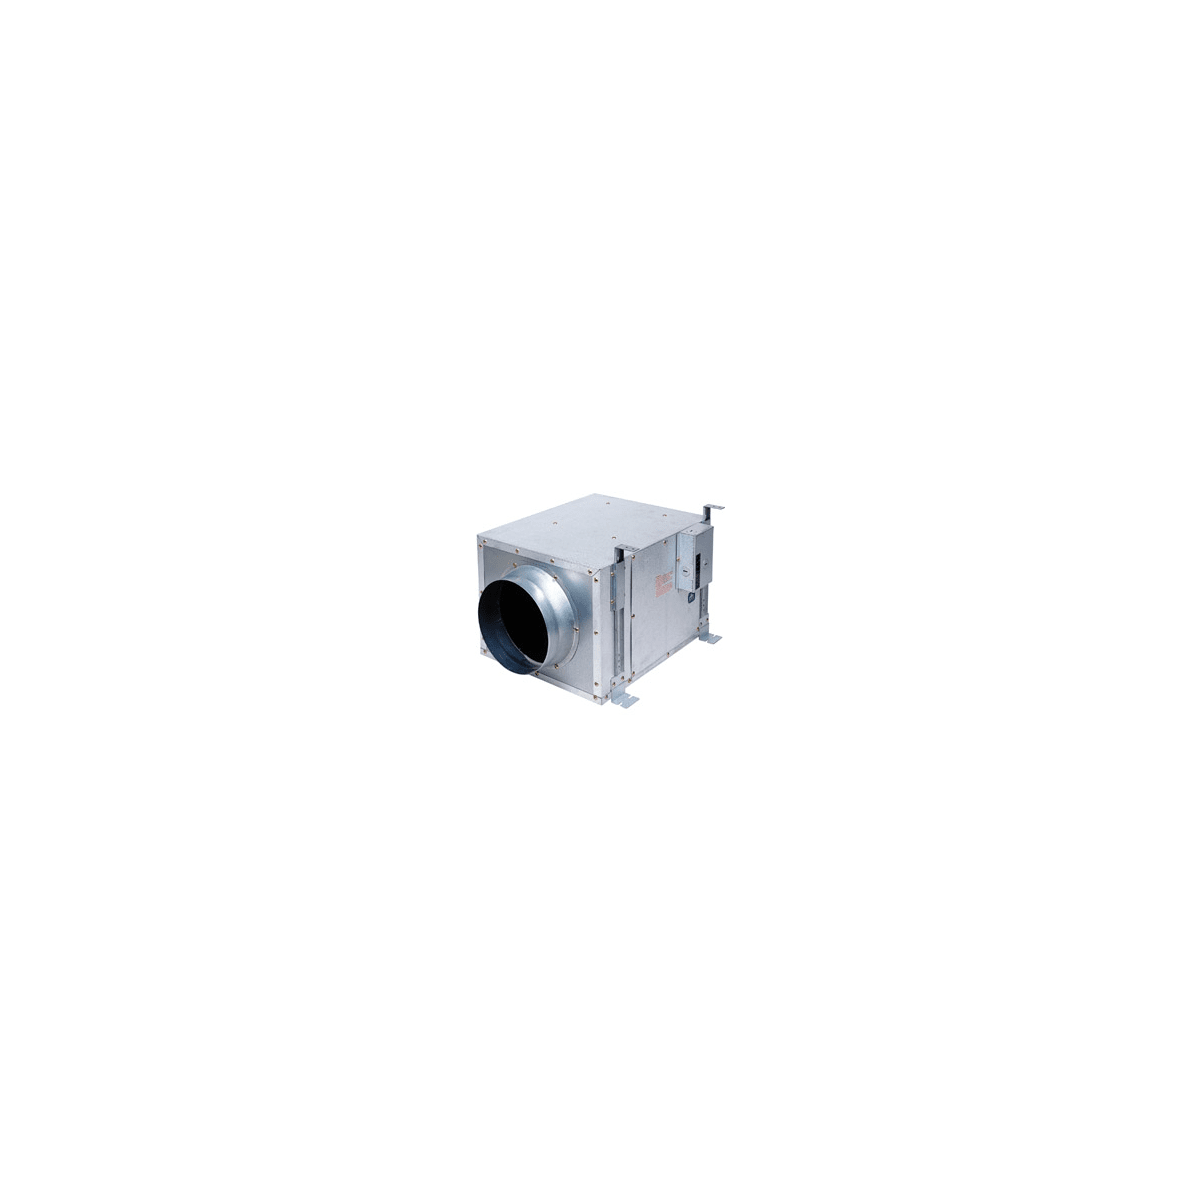 Whisperline 2 1 Sones Ceiling Mounted Energy Star Rated Exhaust Fan With Adjule Airflow For Ducting Multiple Rooms